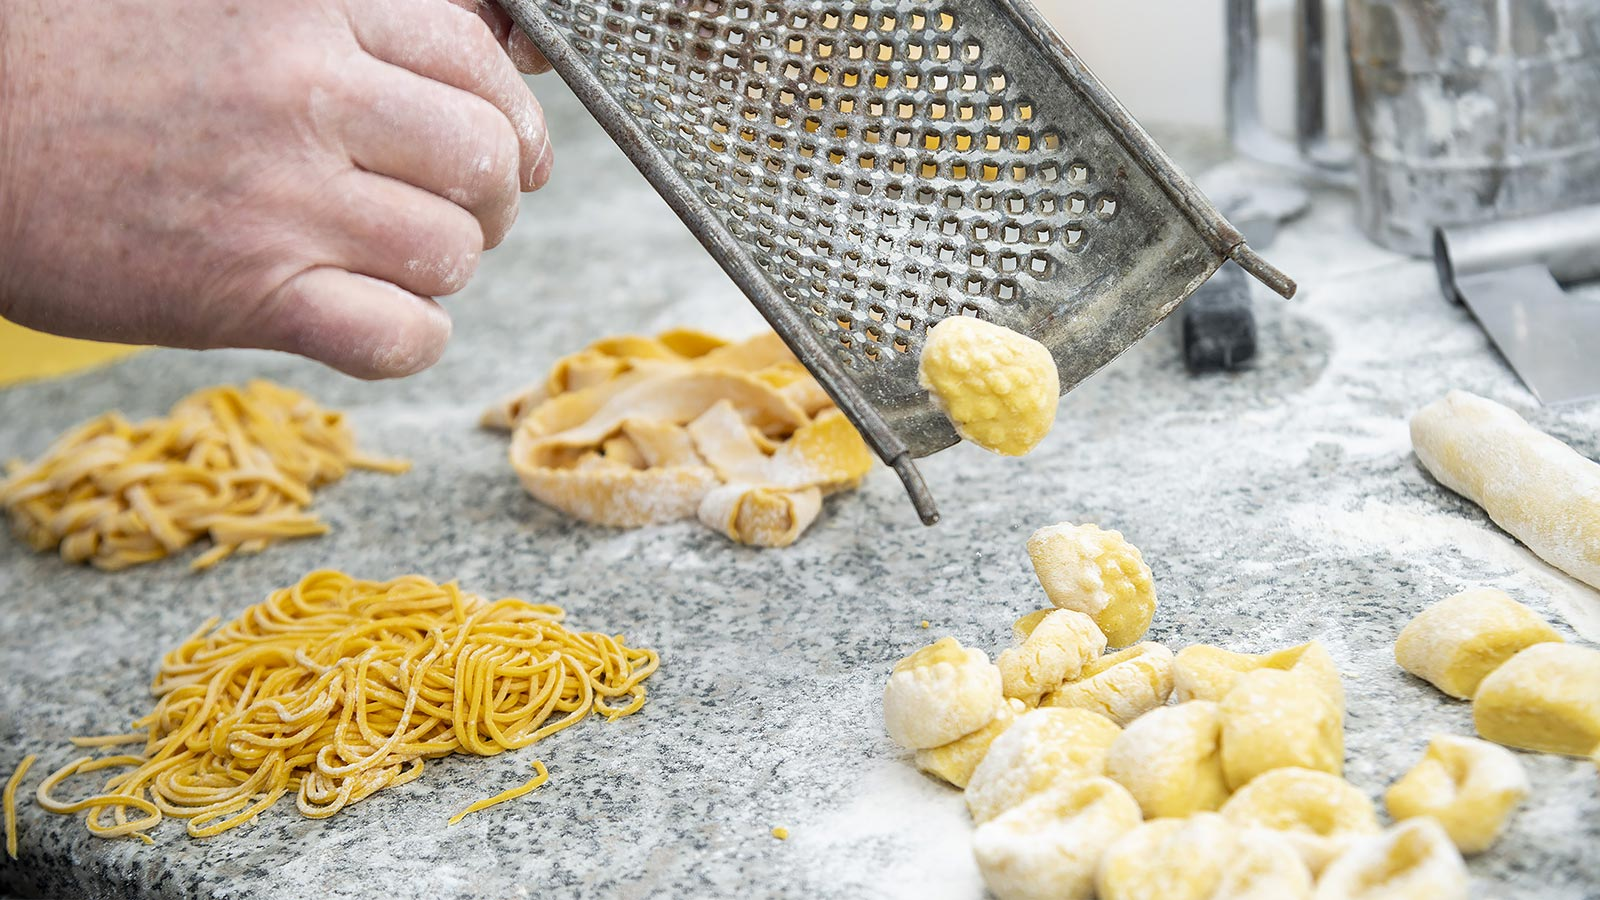 Detail of the tool to make gnocchi